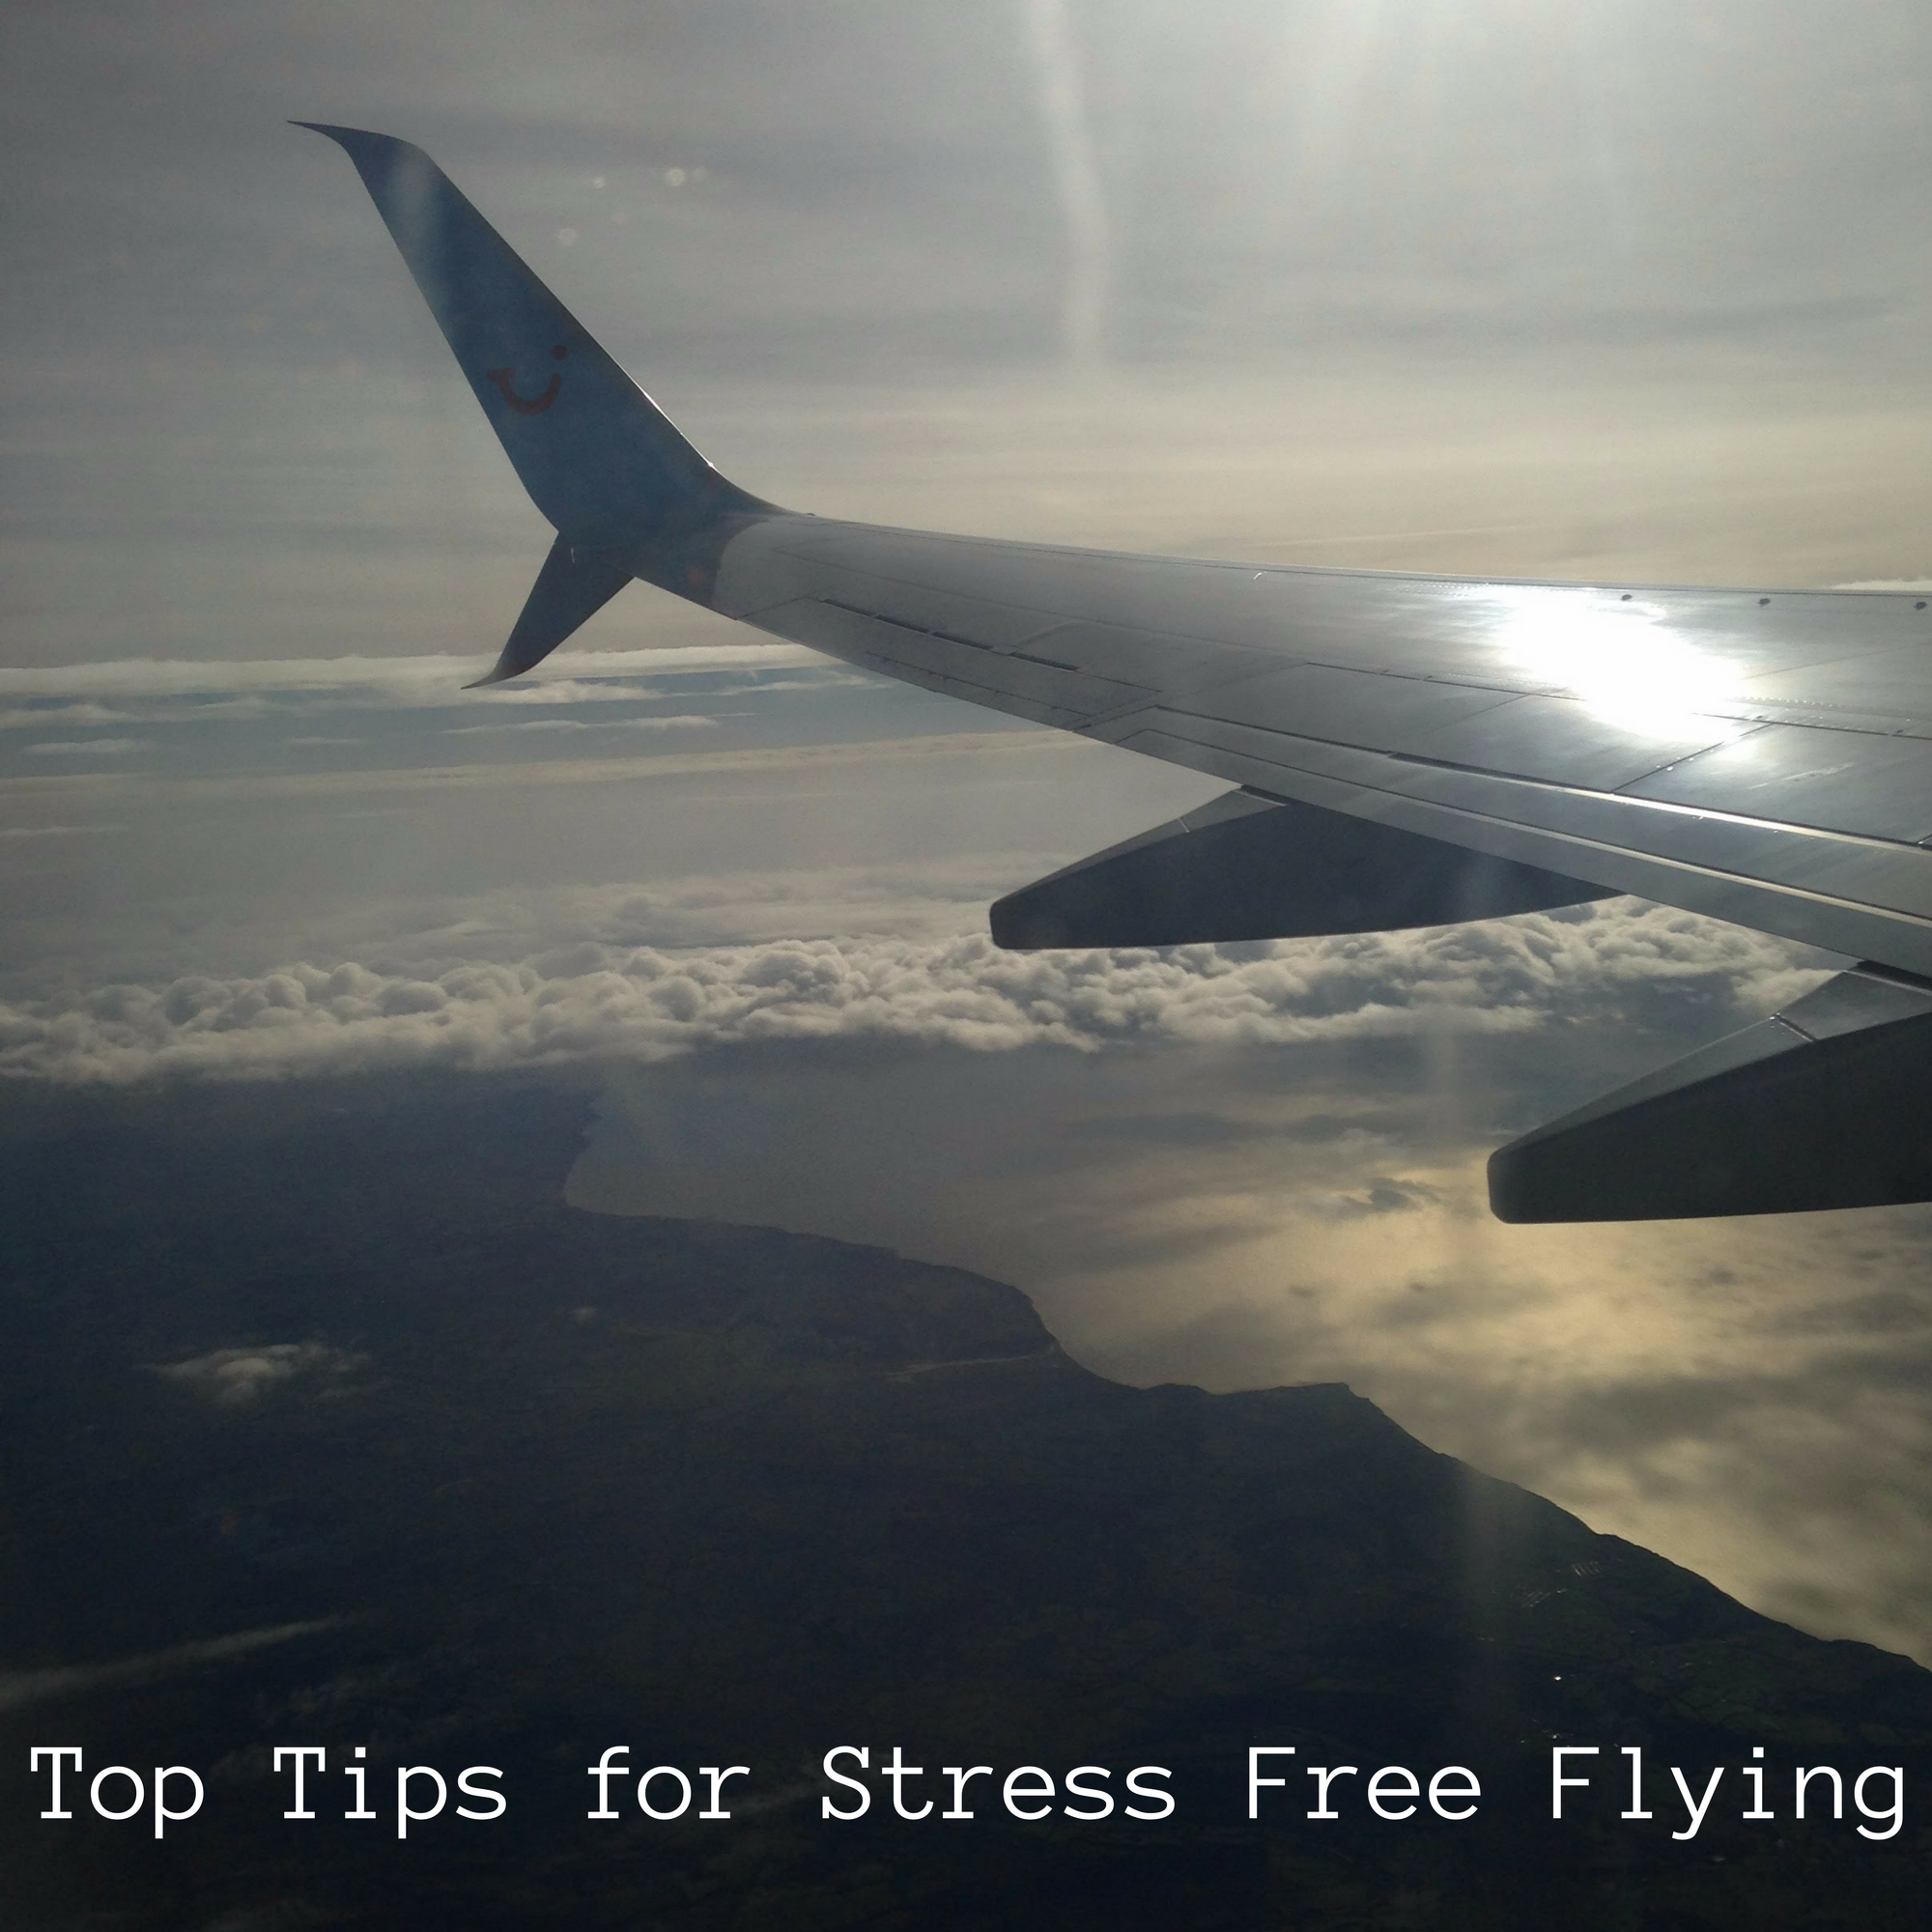 Top Tips for Stress Free Flying